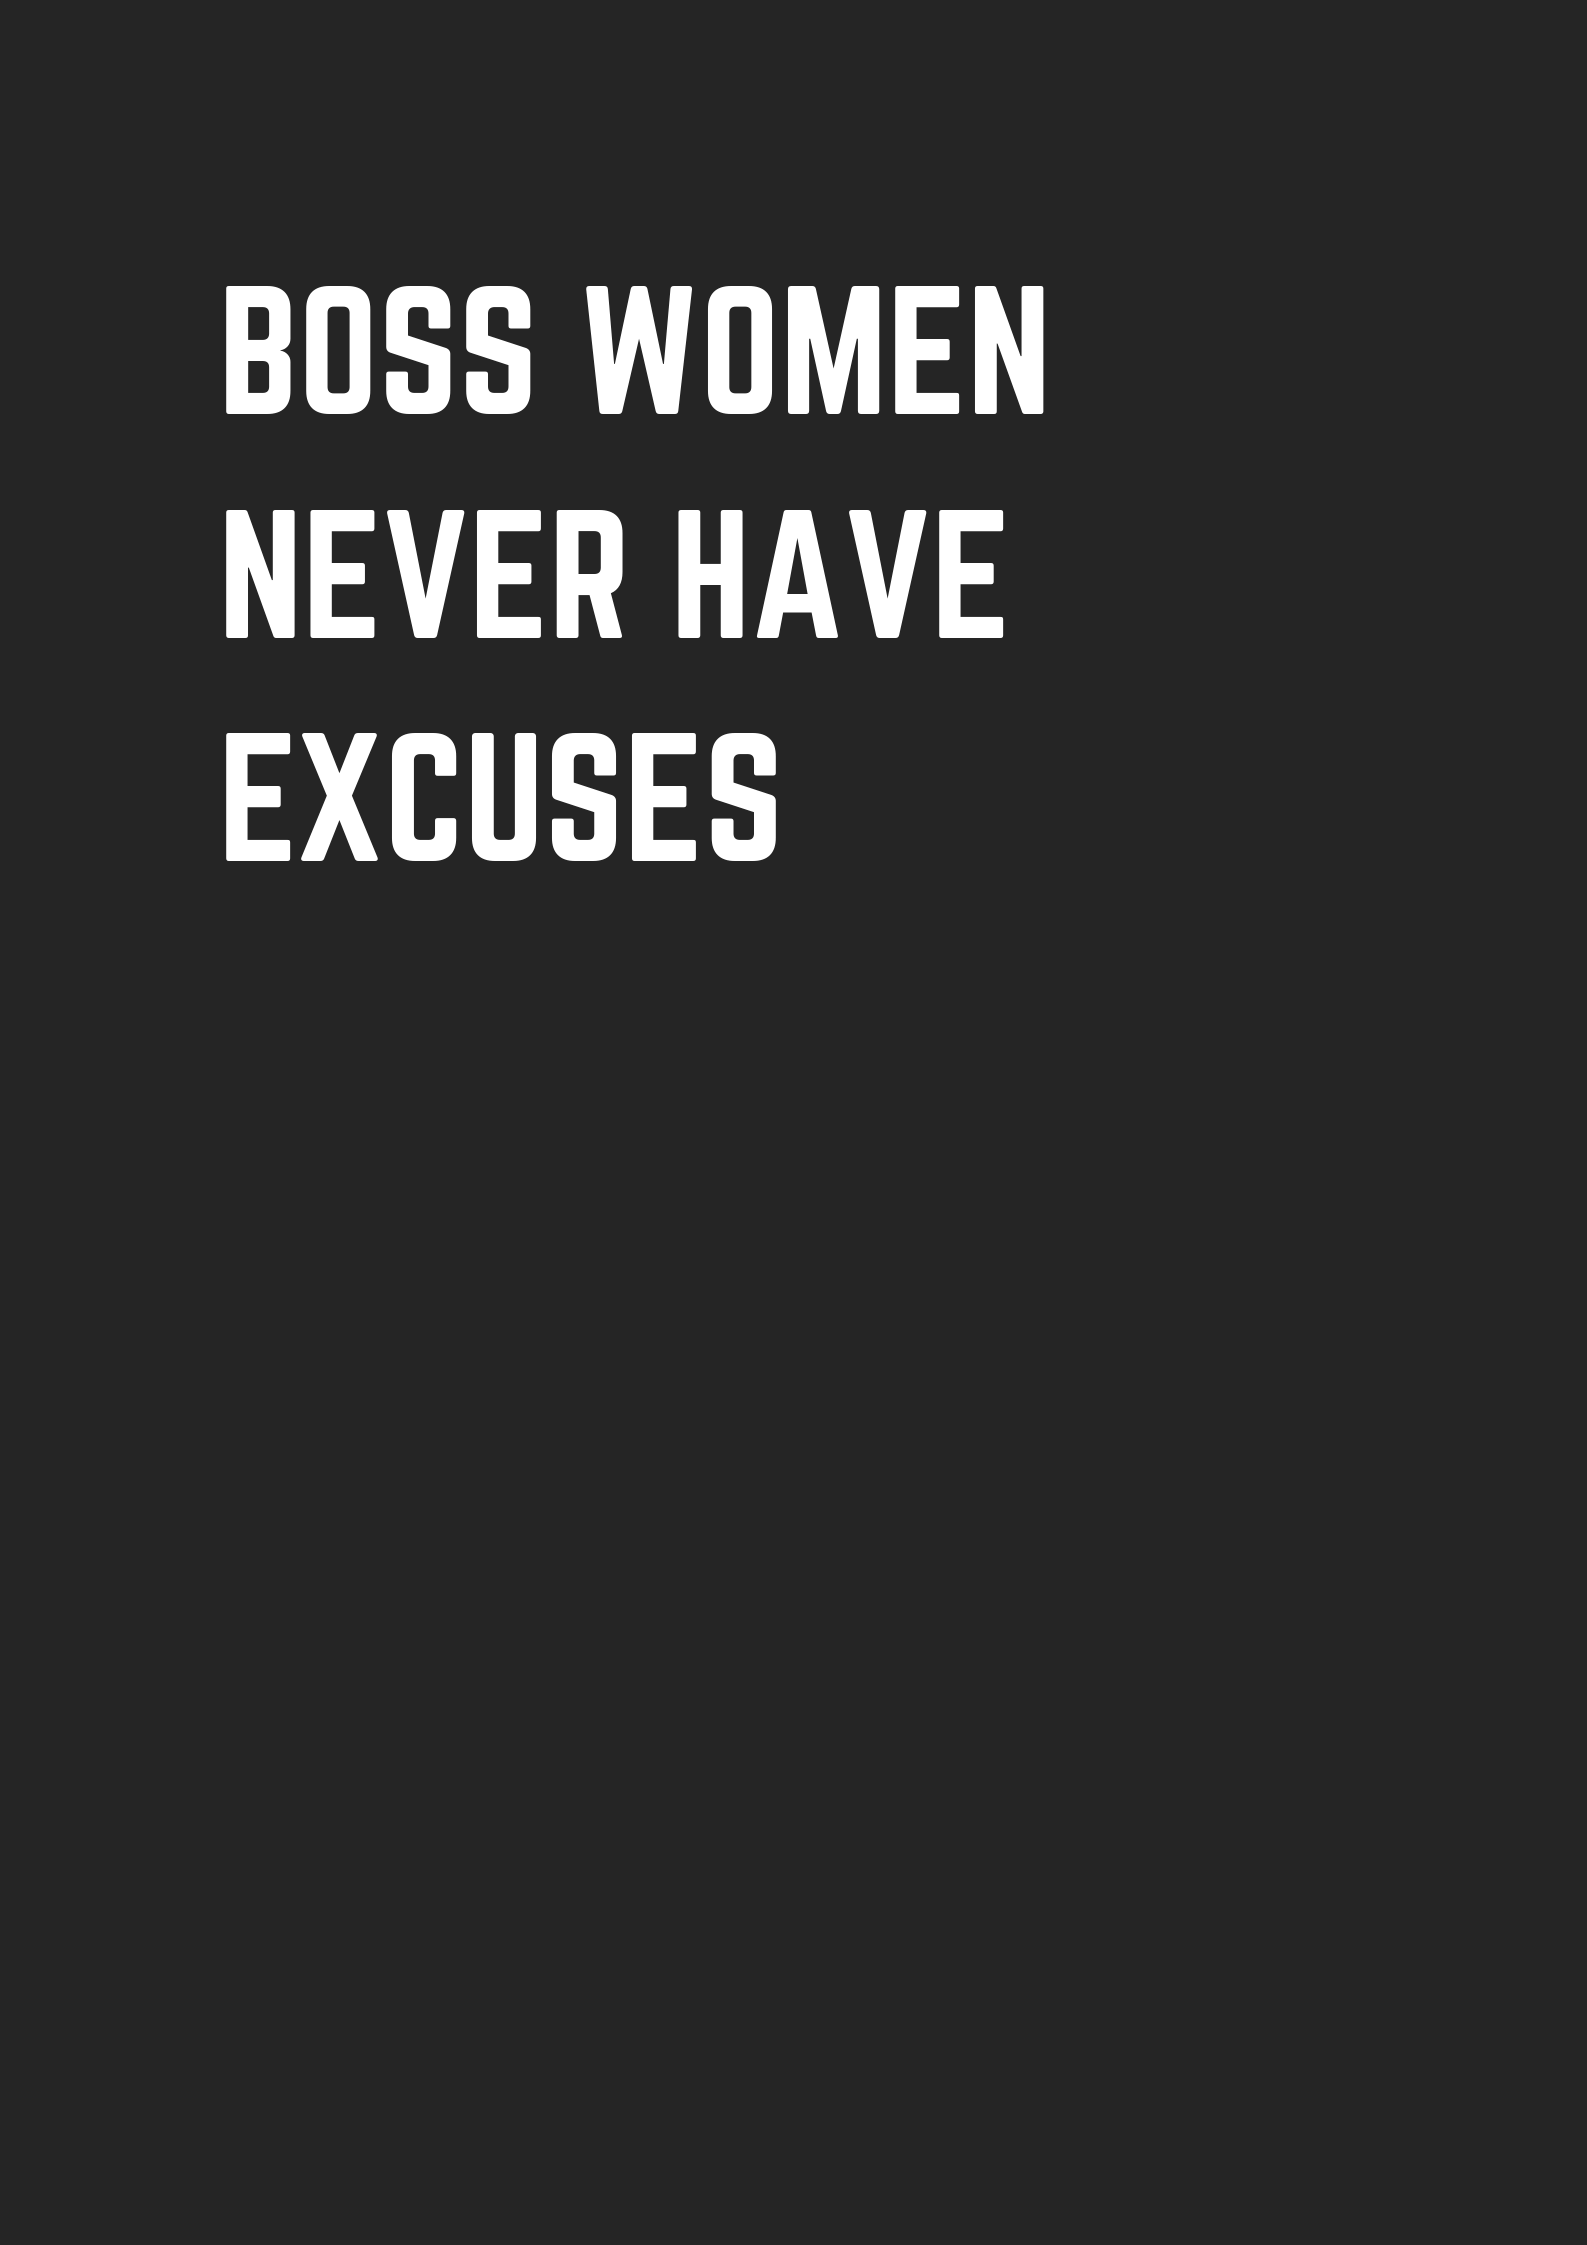 25 Women Boss Quotes to Shake the World - museuly